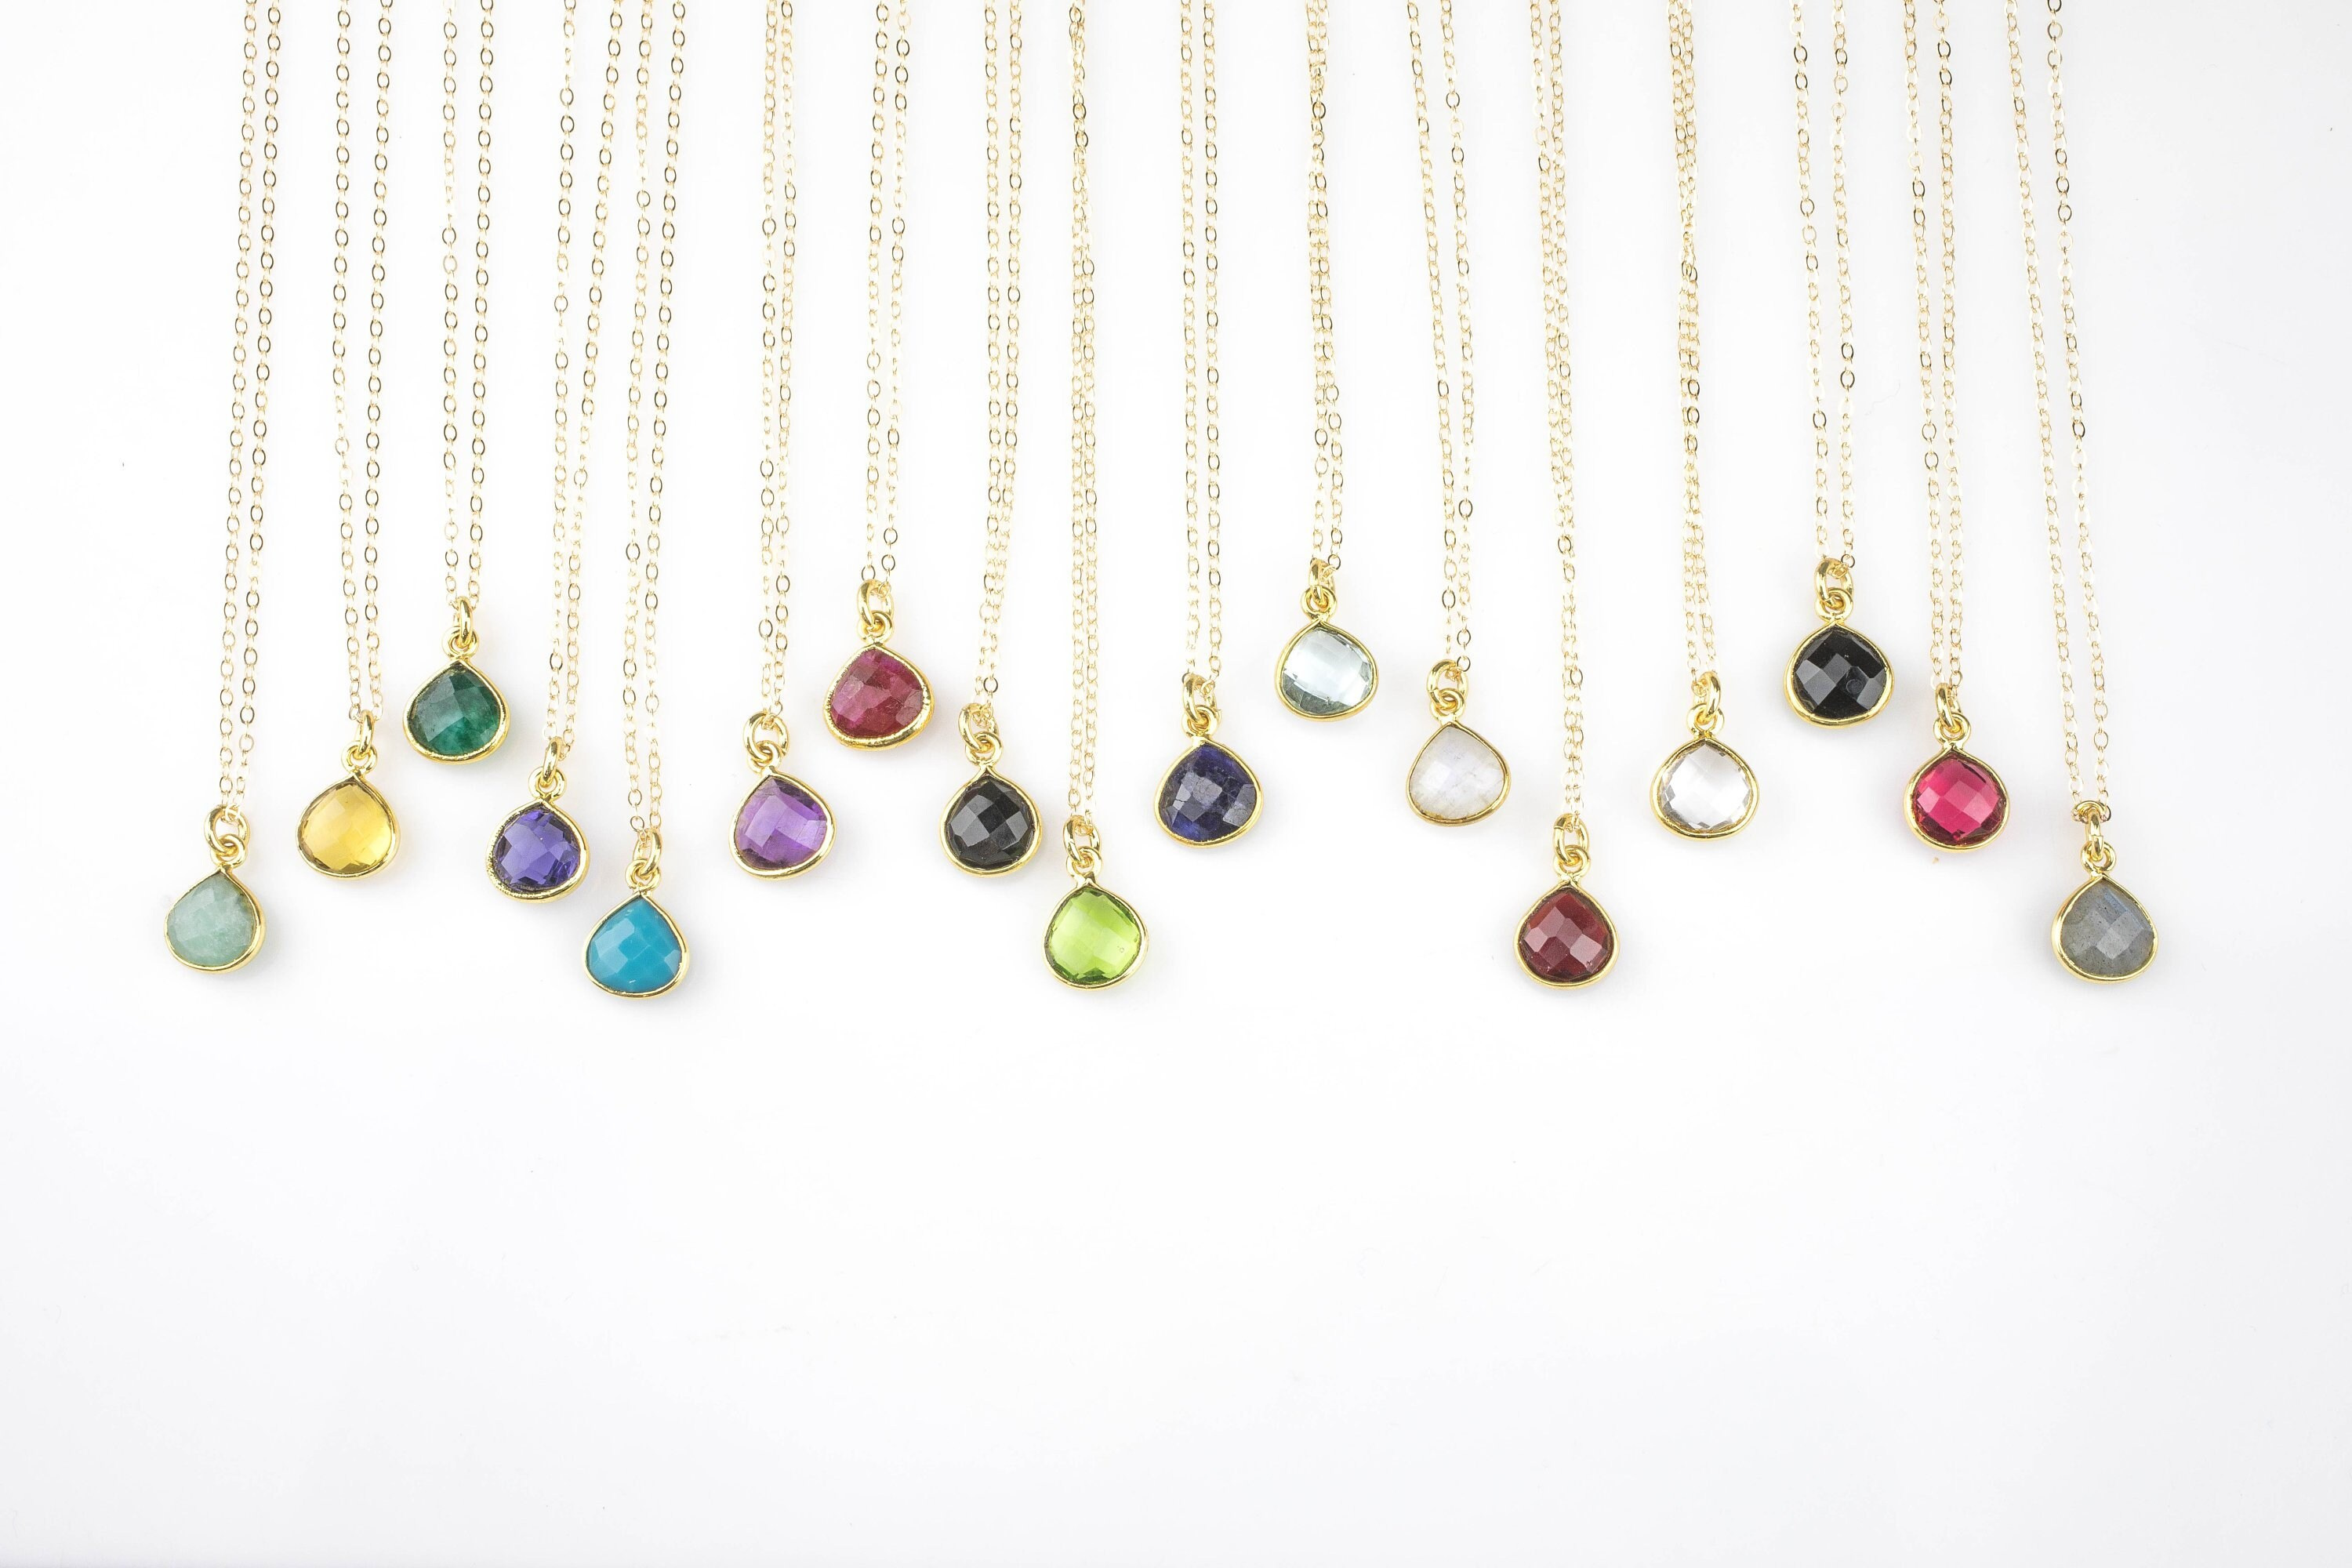 Wholesale Jewelry Gold Filled Gold Filled Birthstone Necklace 14k Gold Filled Chain